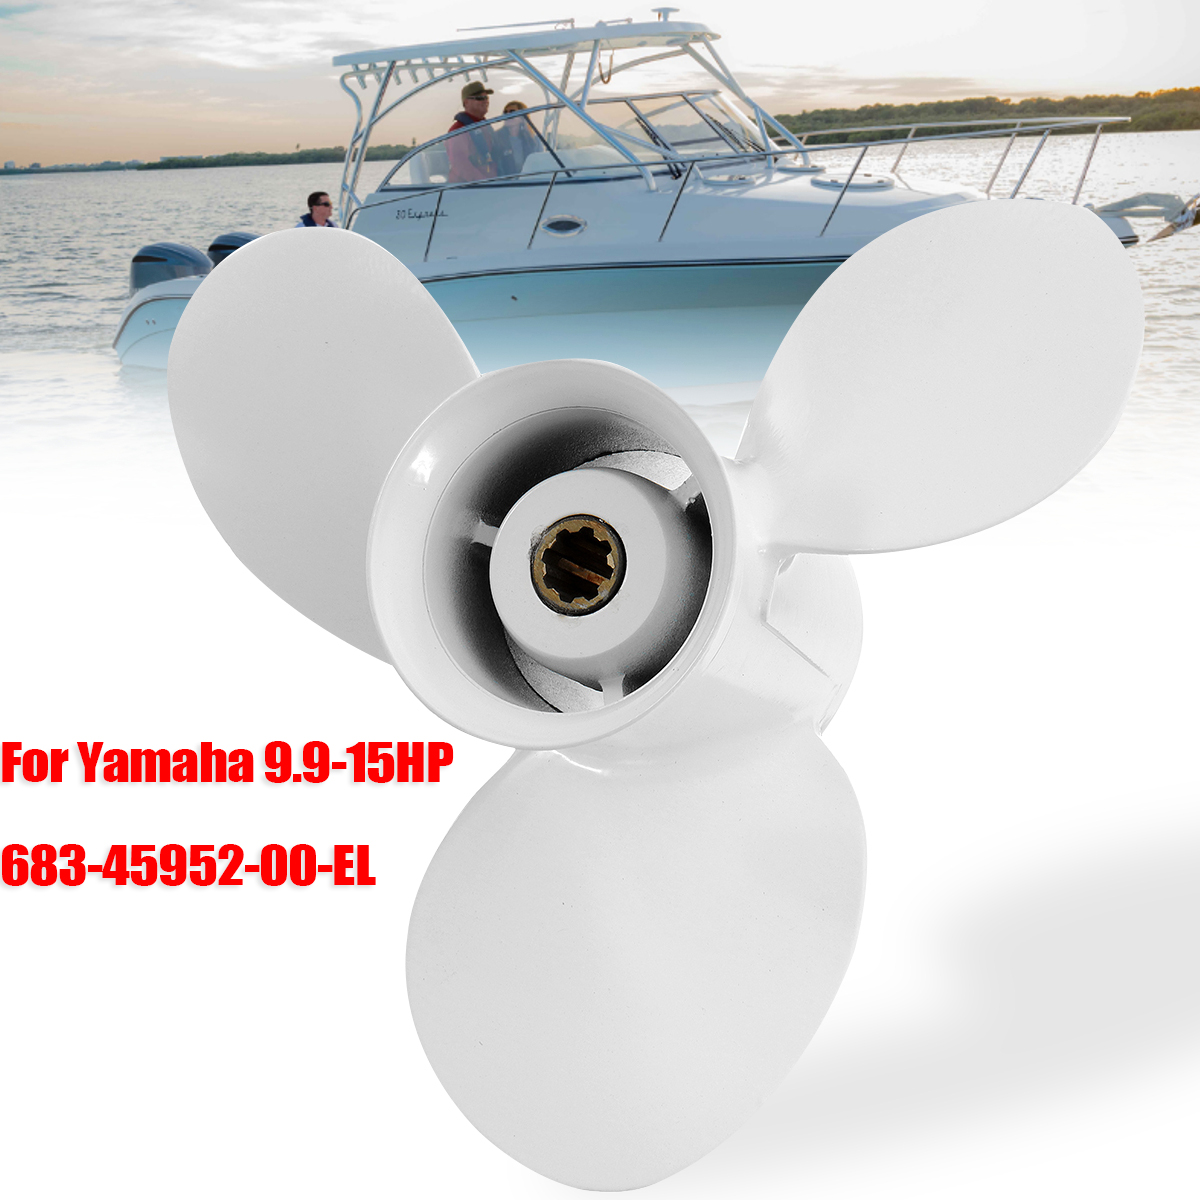 Atv,rv,boat & Other Vehicle United 683-45952-00-el 9 1/4 X 9 3/4 Aluminum Alloy Boat Outboard Propeller For Yamaha 9.9-15hp R Rotation 3 Blades 8 Spline Tooths